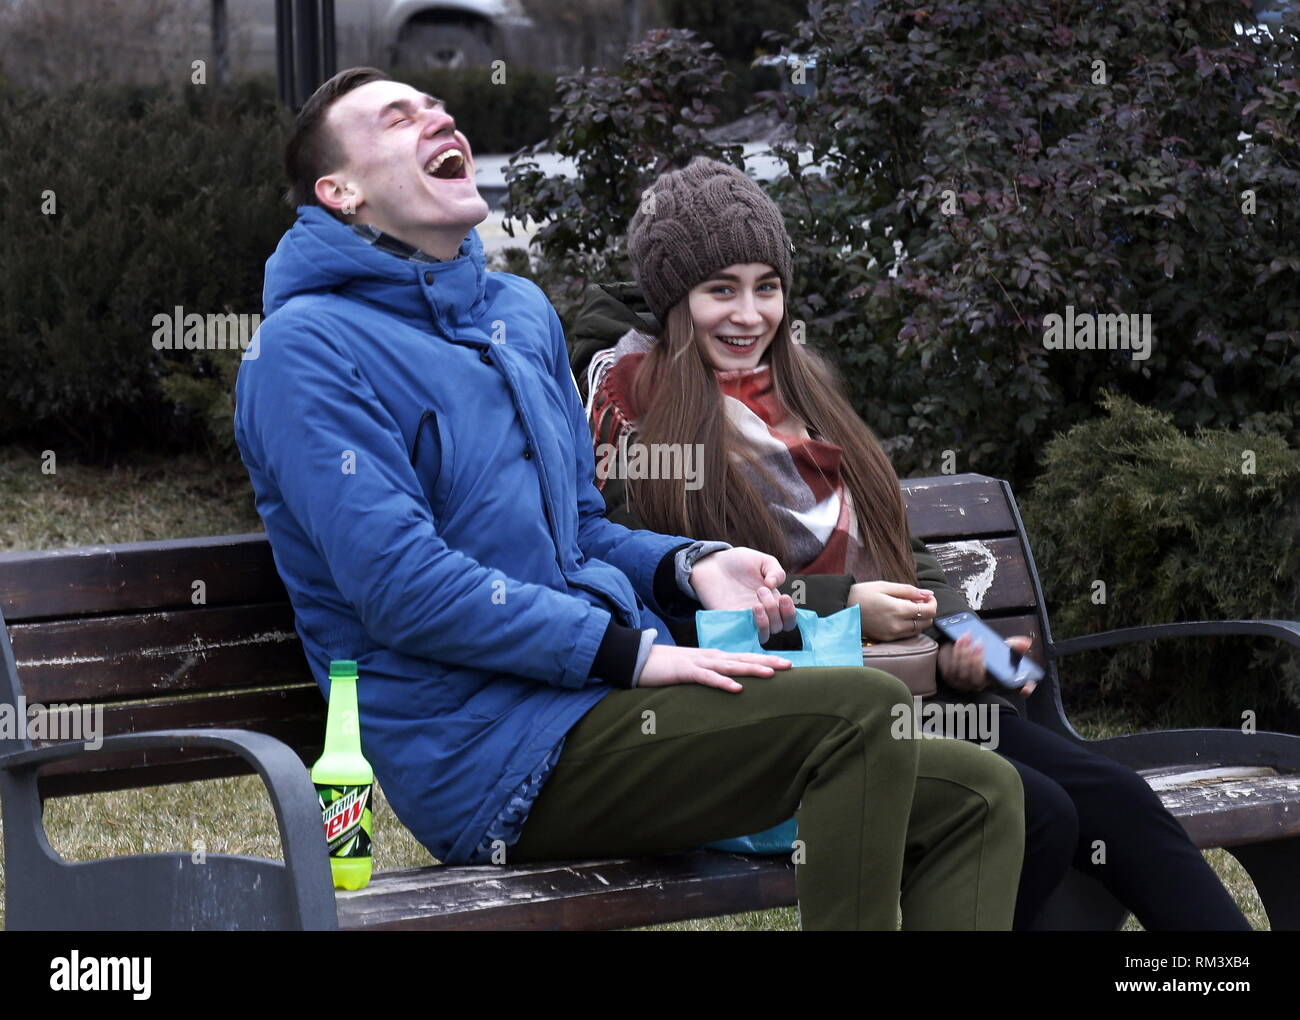 ROSTOV-ON-DON, RUSSIA - FEBRUARY 10, 2019: A young couple seen in a street. Valery Matytsin/TASS - Stock Image